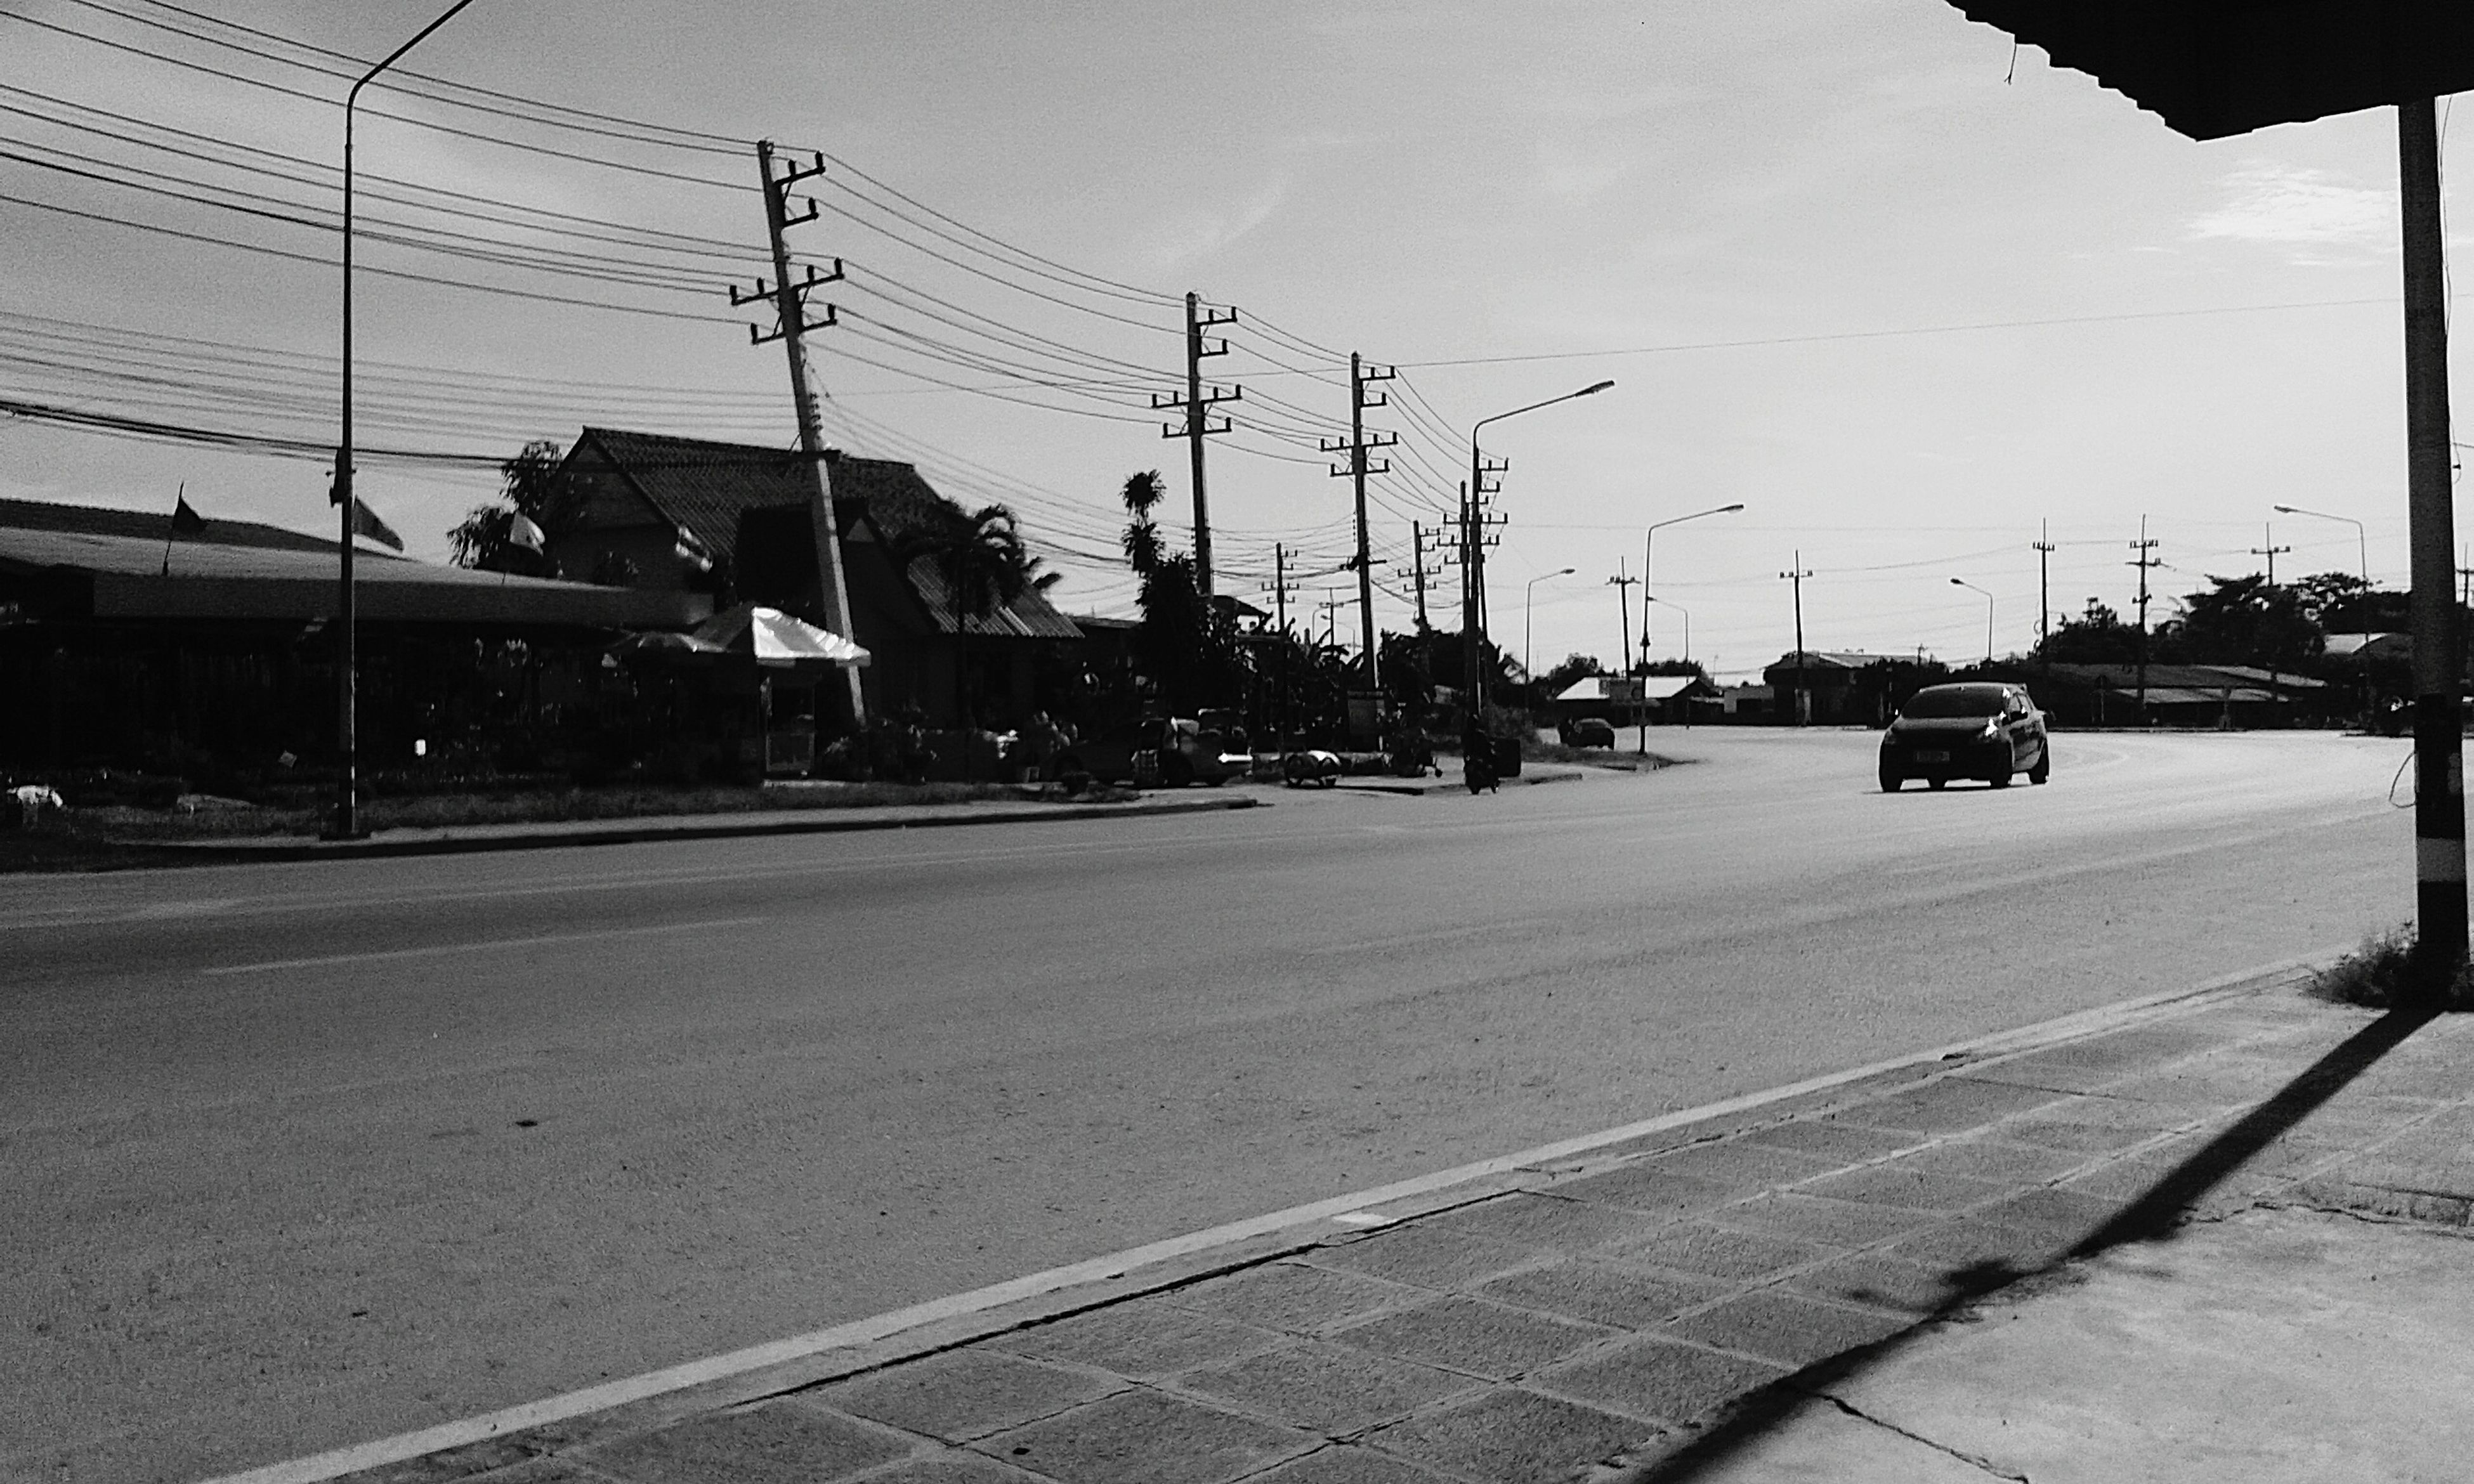 transportation, street, power line, car, mode of transport, building exterior, land vehicle, road, sky, electricity pylon, city, built structure, railroad track, architecture, street light, the way forward, city street, road marking, city life, outdoors